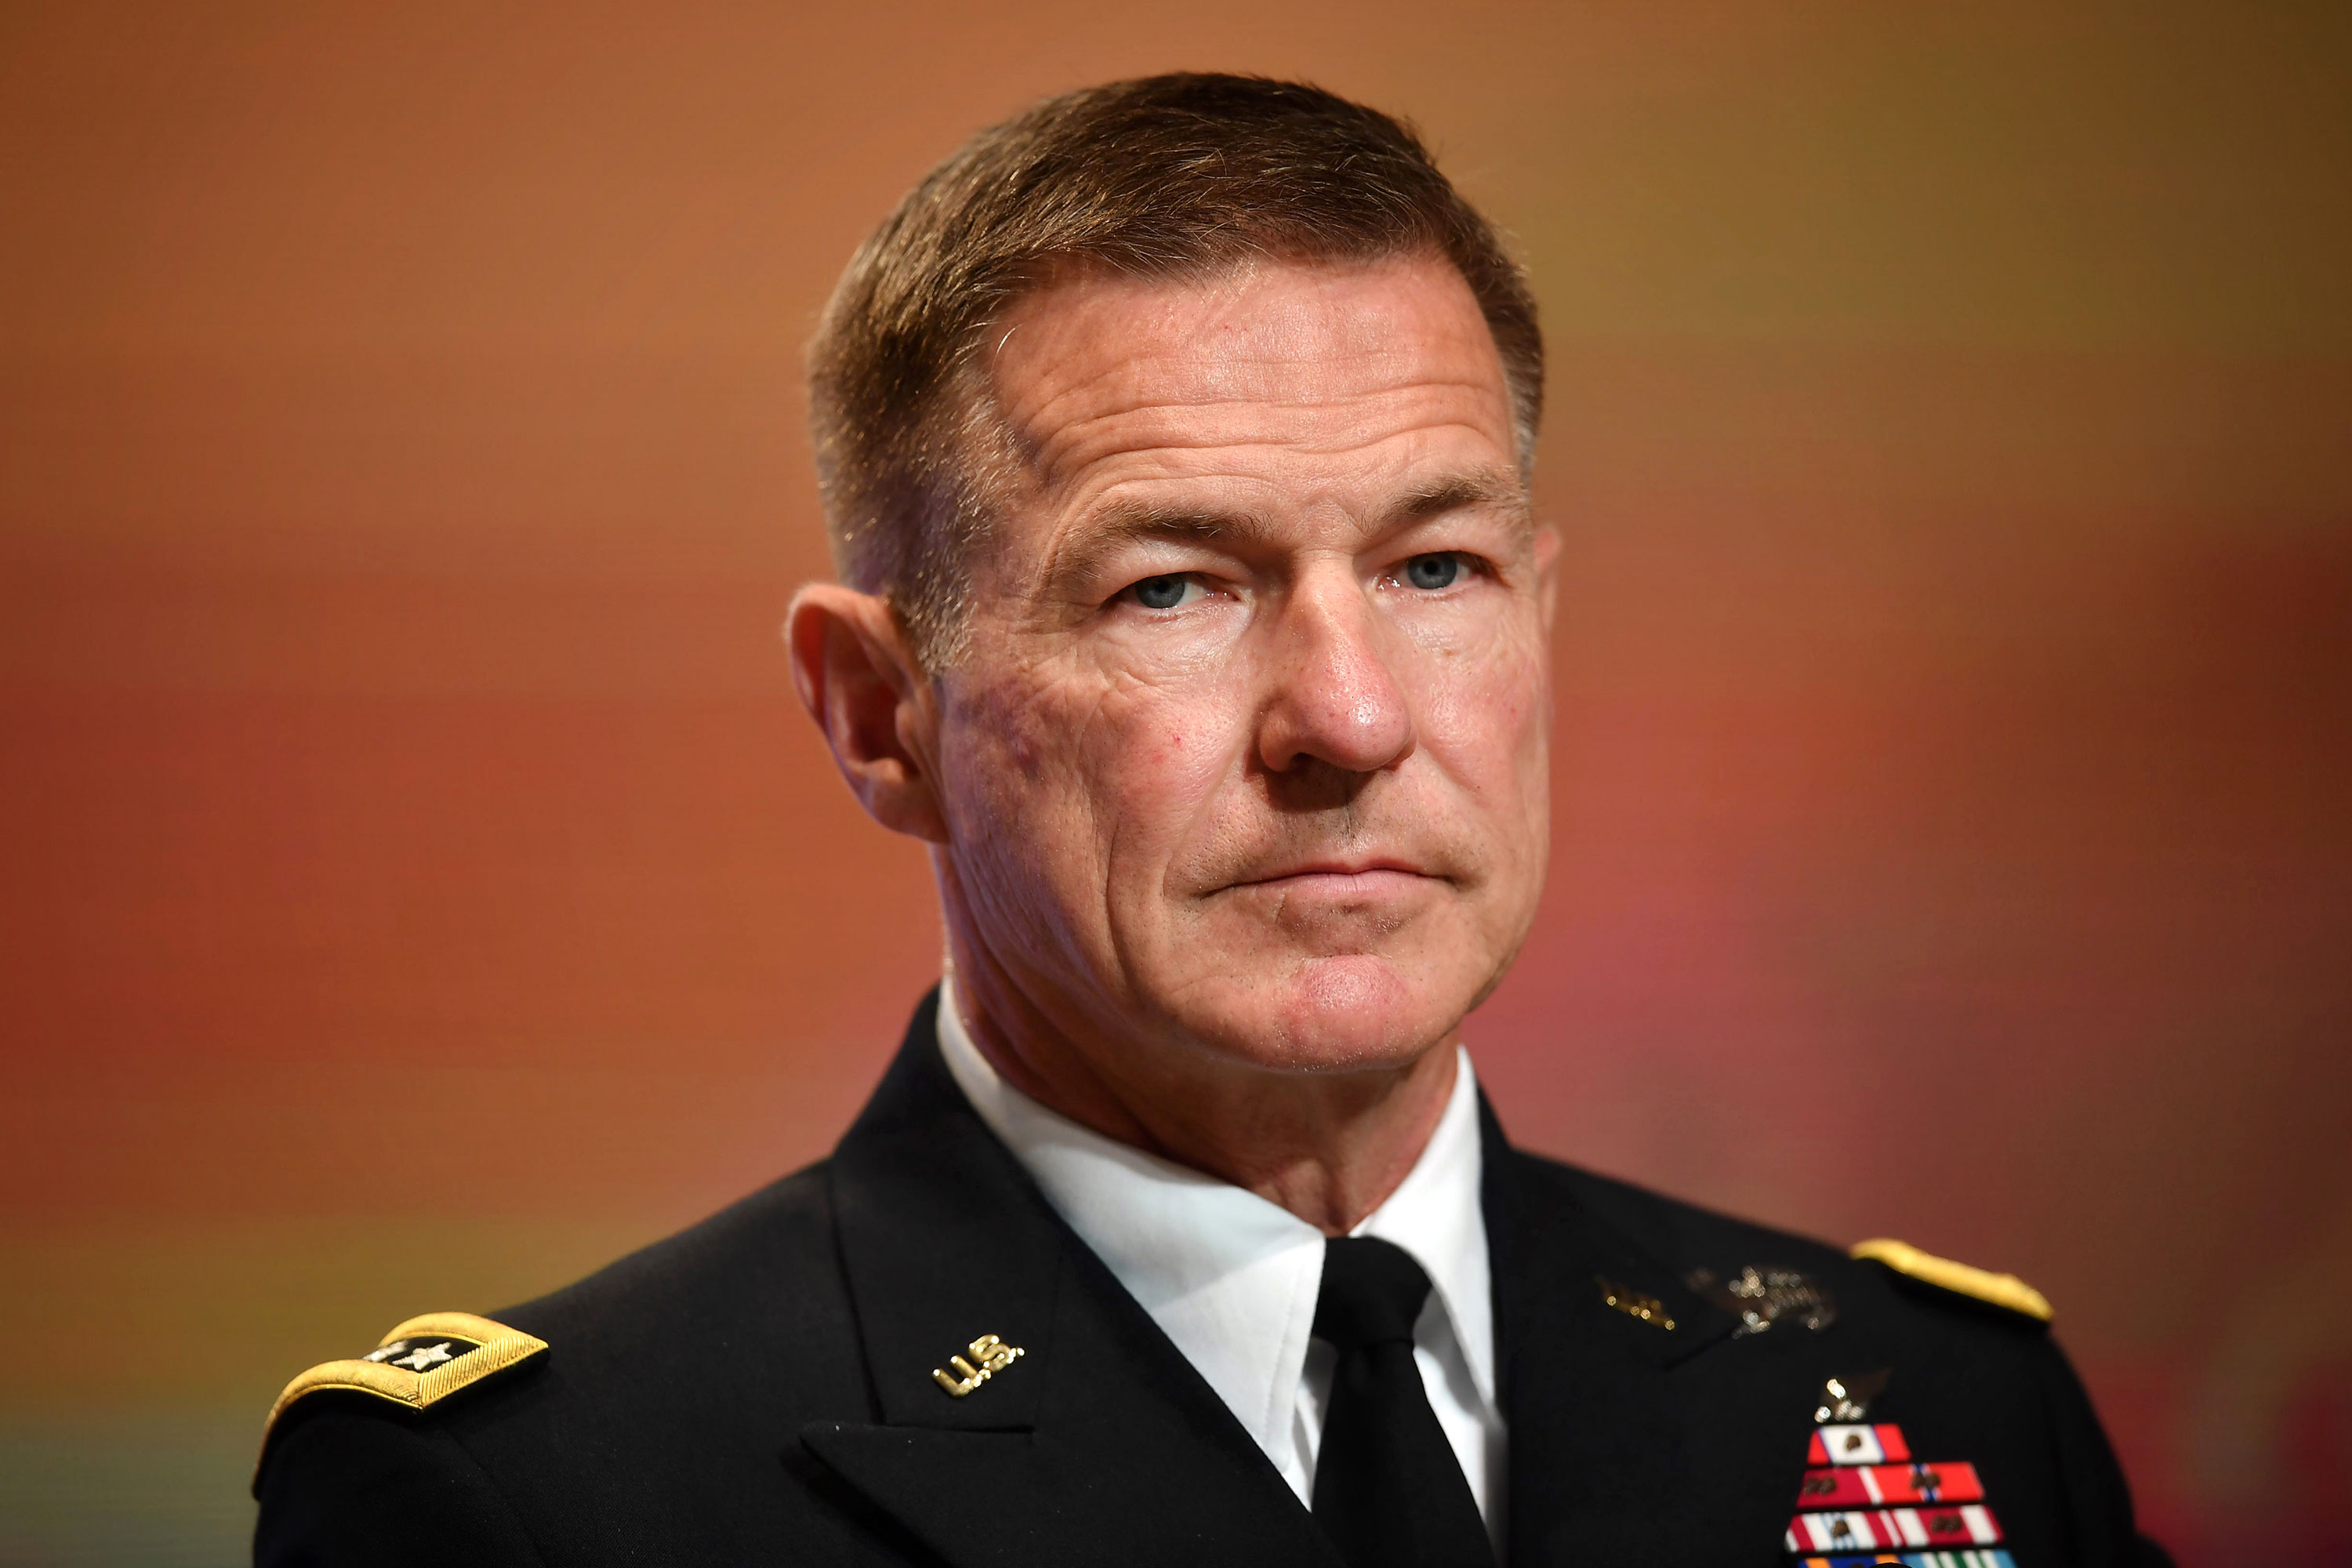 Army Chief of Staff Gen. James McConville attends the Indo-Pacific Army Chiefs Conference meeting in Bangkok on September 9, 2019.